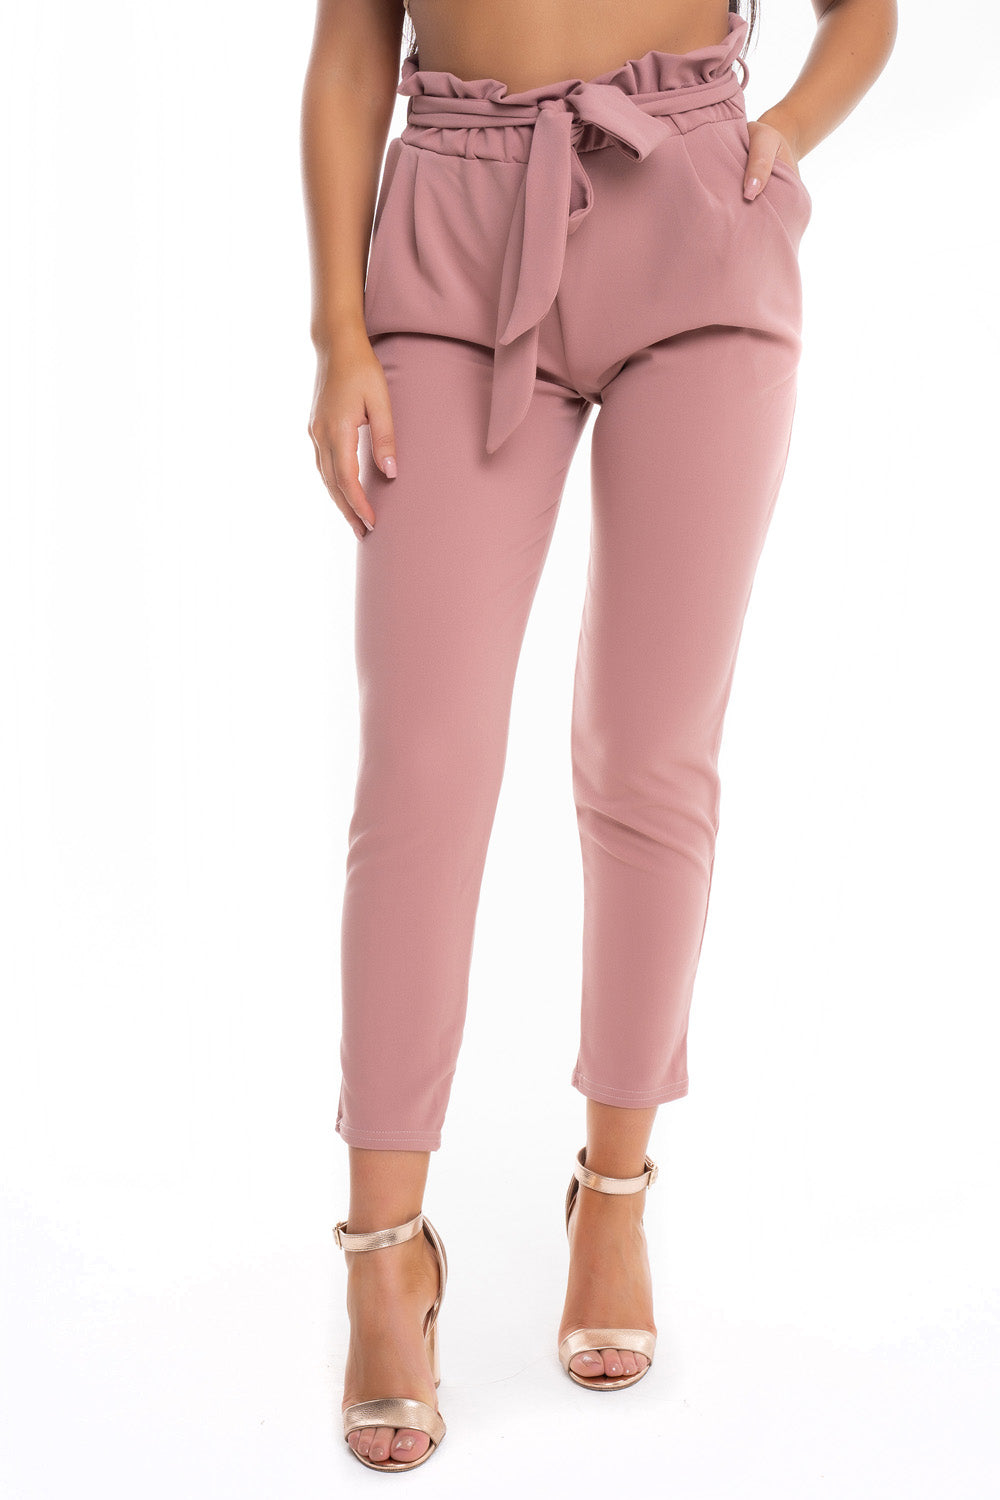 High Waist Tie Trousers - Mirror Image Style